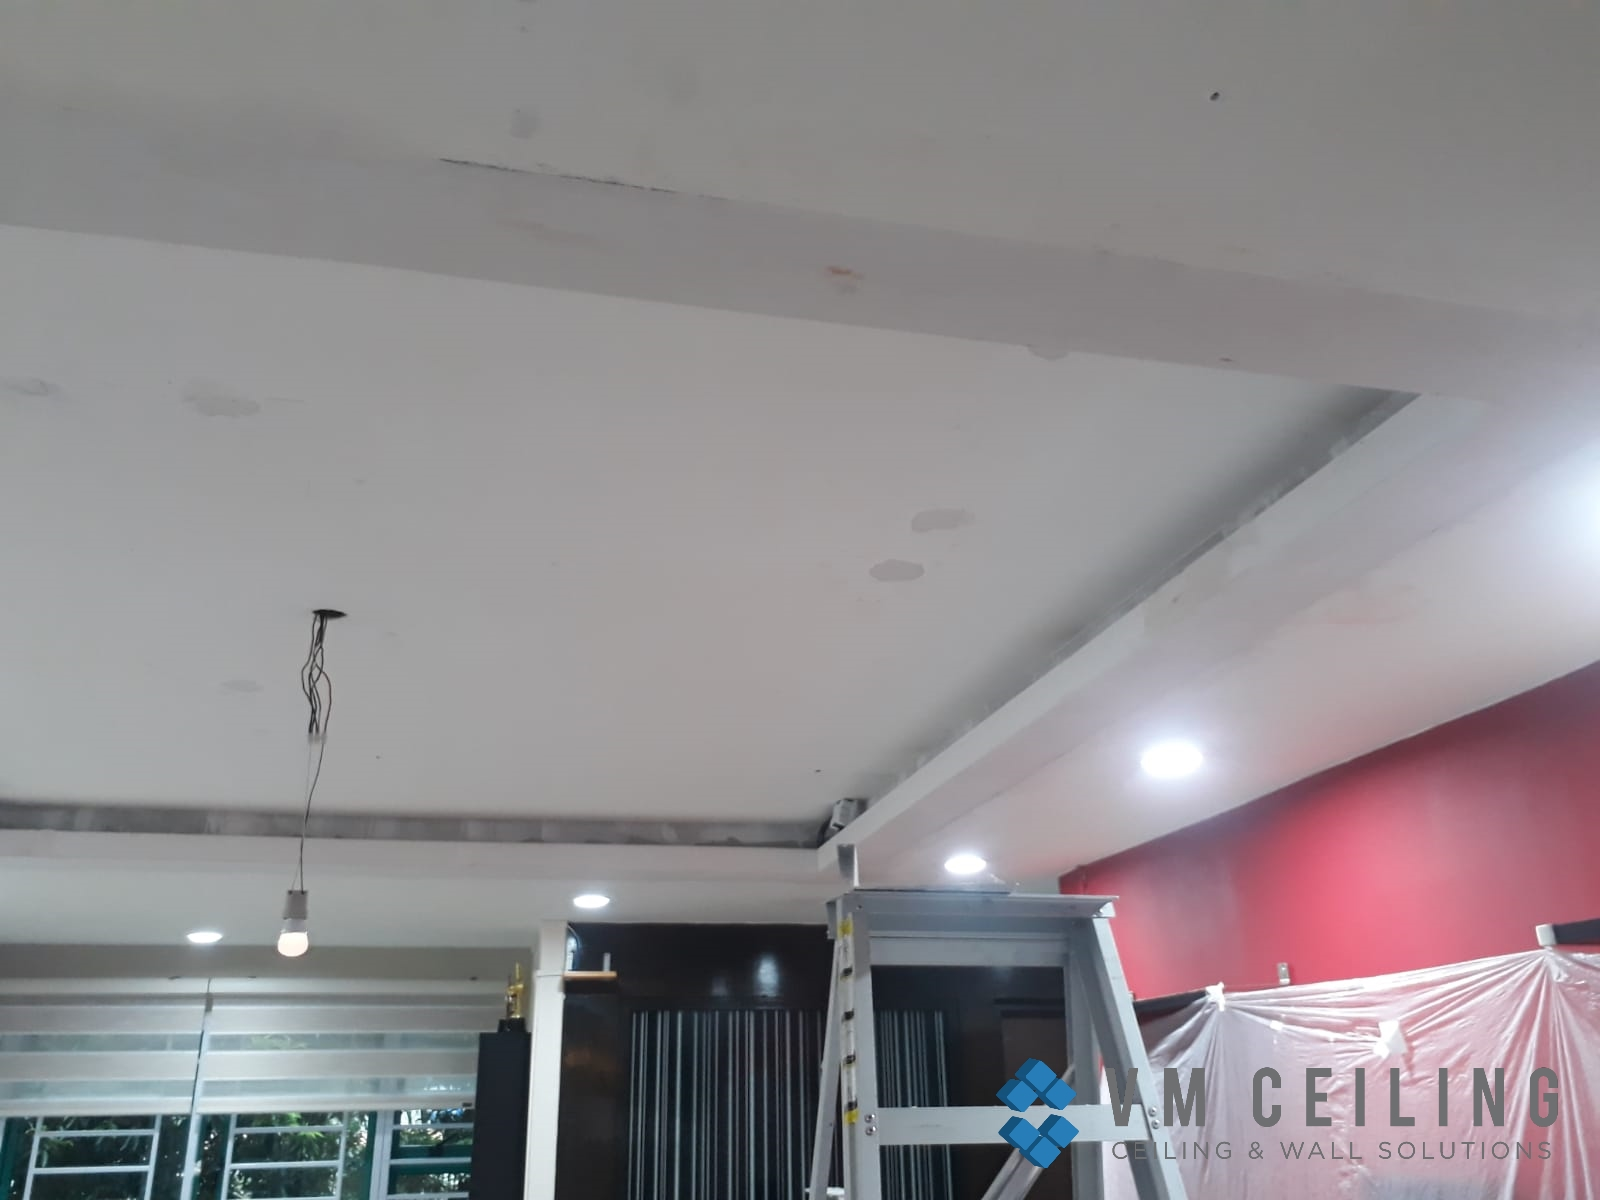 Living Room False Ceiling Downlights Installation vm ceiling Singapore HDB Admiralty 1